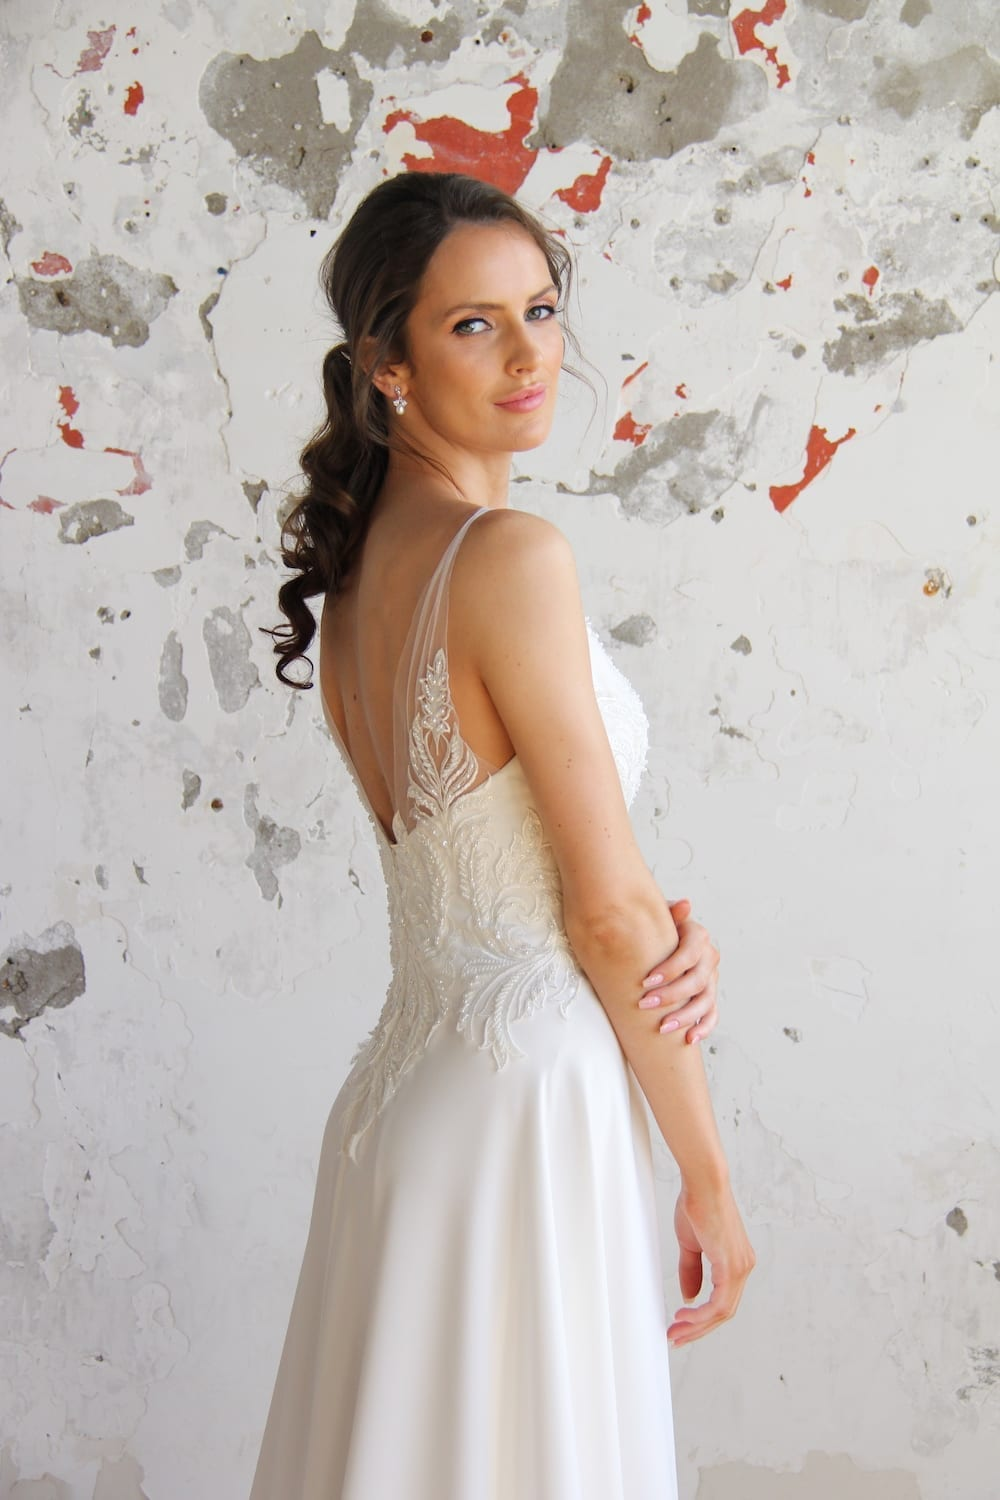 Female model wearing Vinka Design Modern Muse Wedding Dress. In chic warehouse the side detail of a gown with beaded lace and tulle bodice and bridal crepe skirt with train.